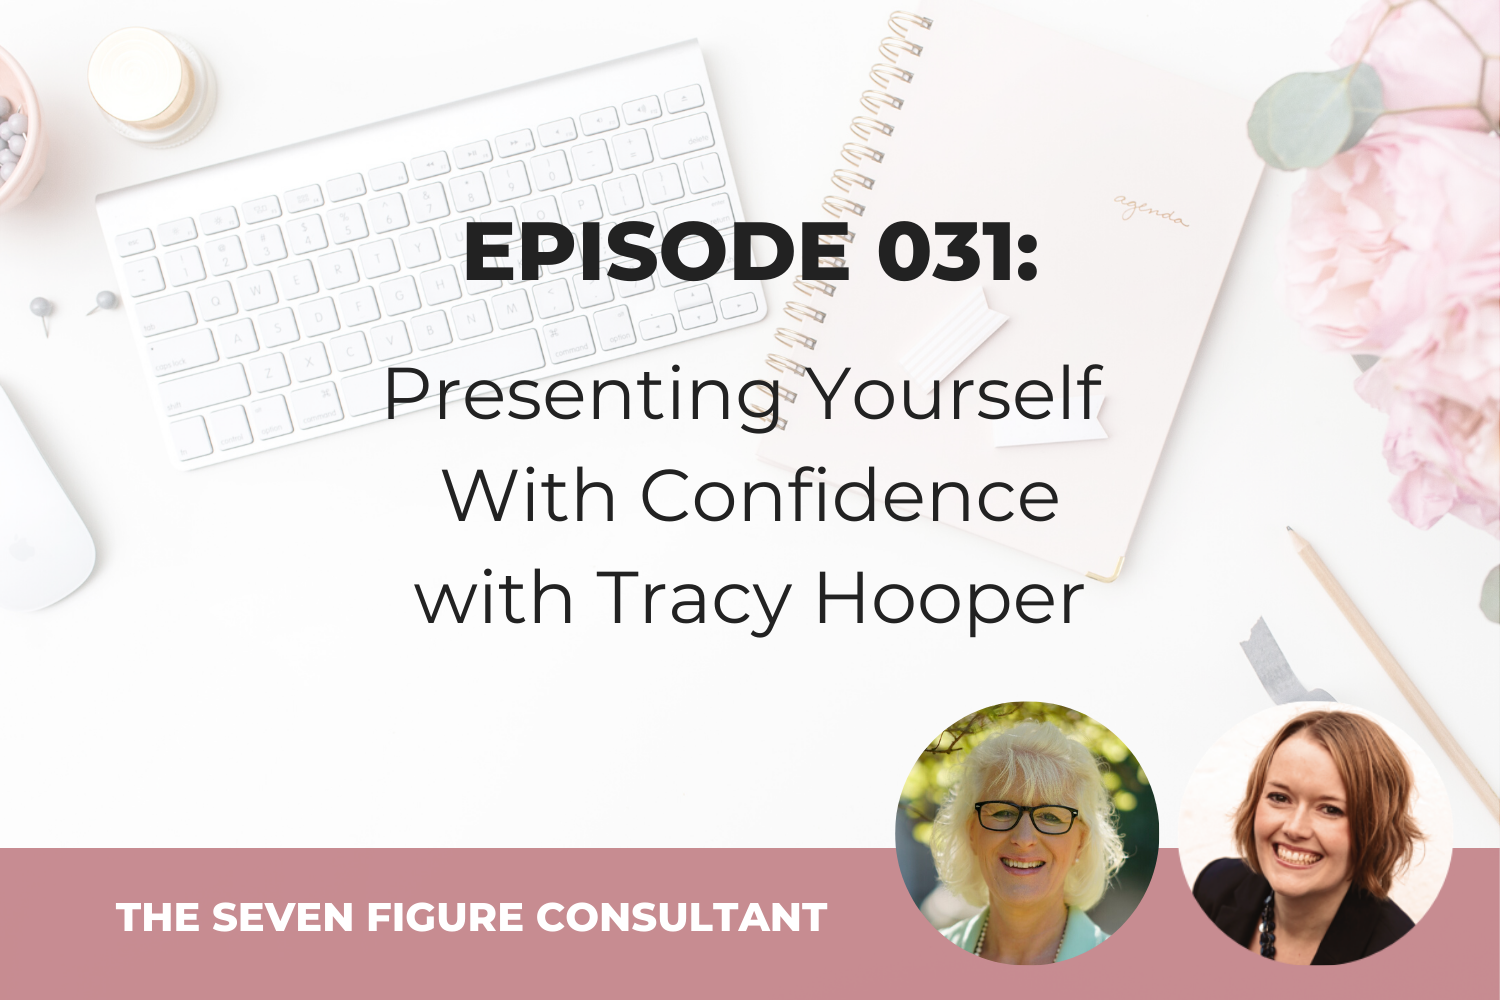 Episode 031: Presenting Yourself With Confidence, With Tracy Hooper